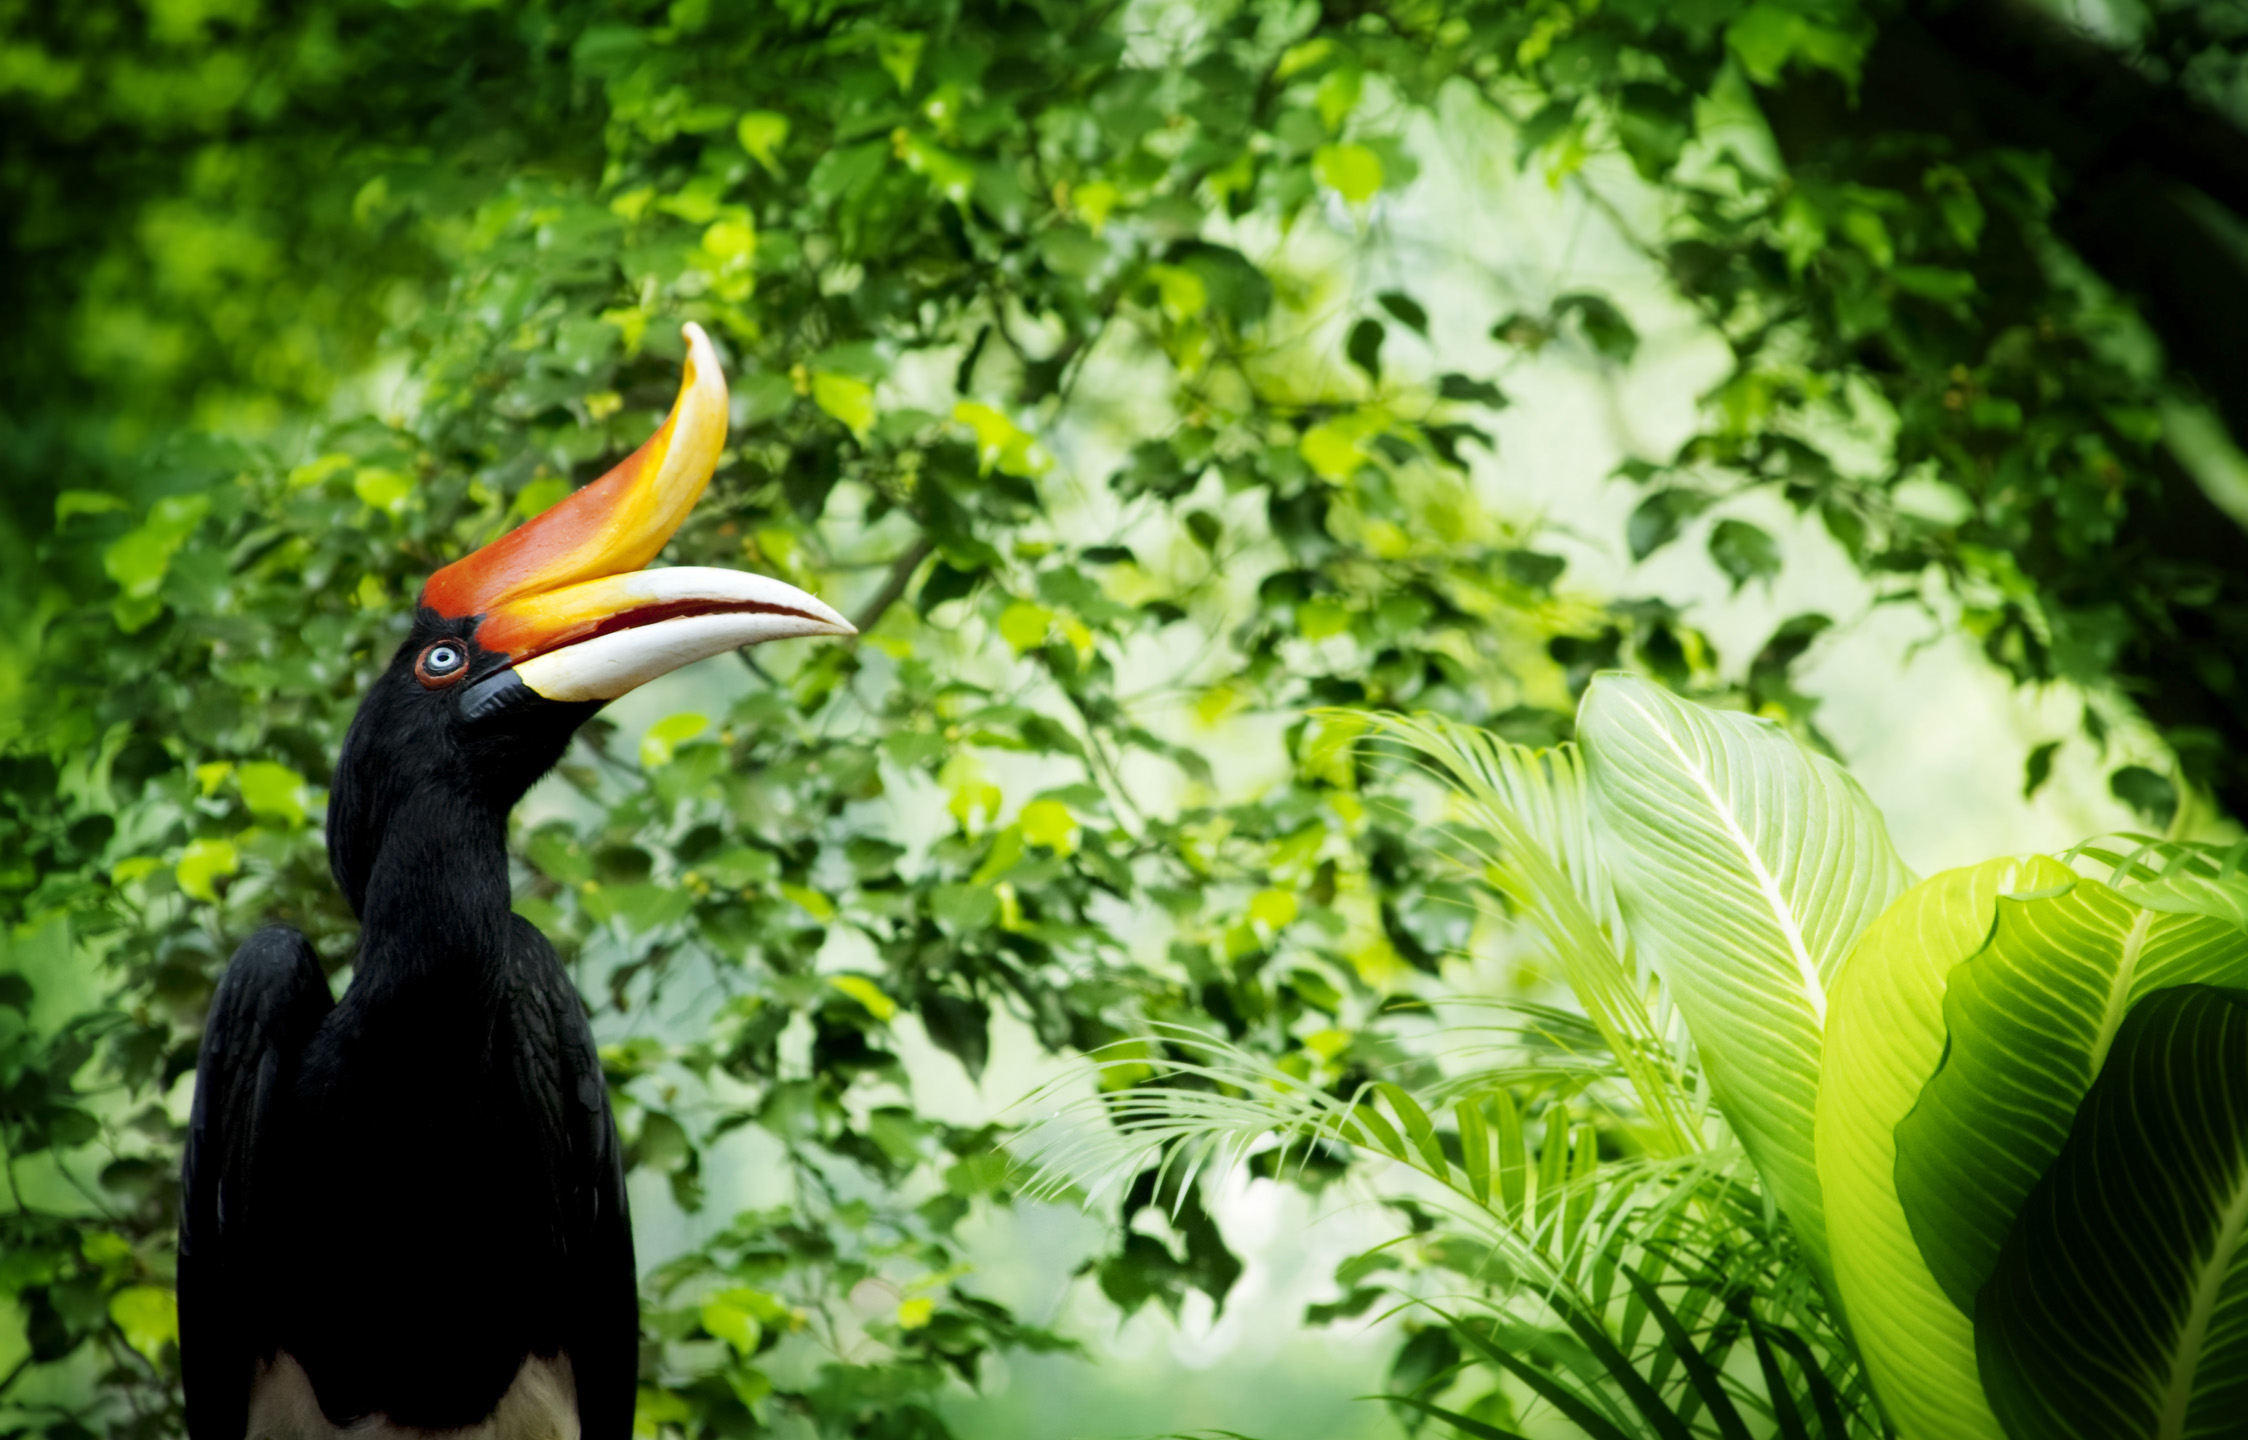 Sarawak's state bird, the Hornbill is thought to be the messenger between god and men by the Iban people